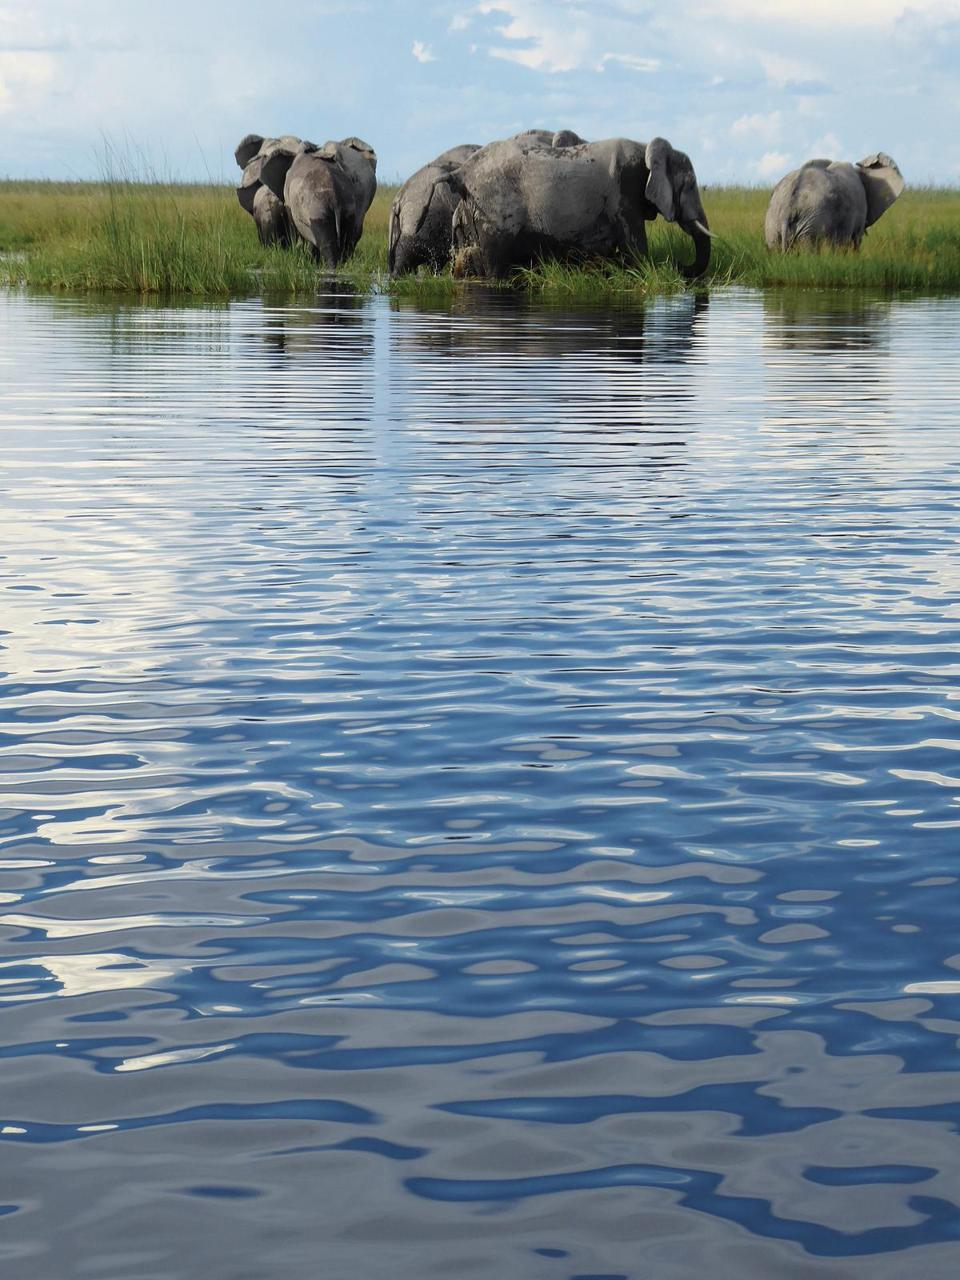 One of Botswana's many free-roaming elephant herds prepares to cross a channel in the private Linyanti Wildlife Reserve in northern Botswana, near the Namibia border.